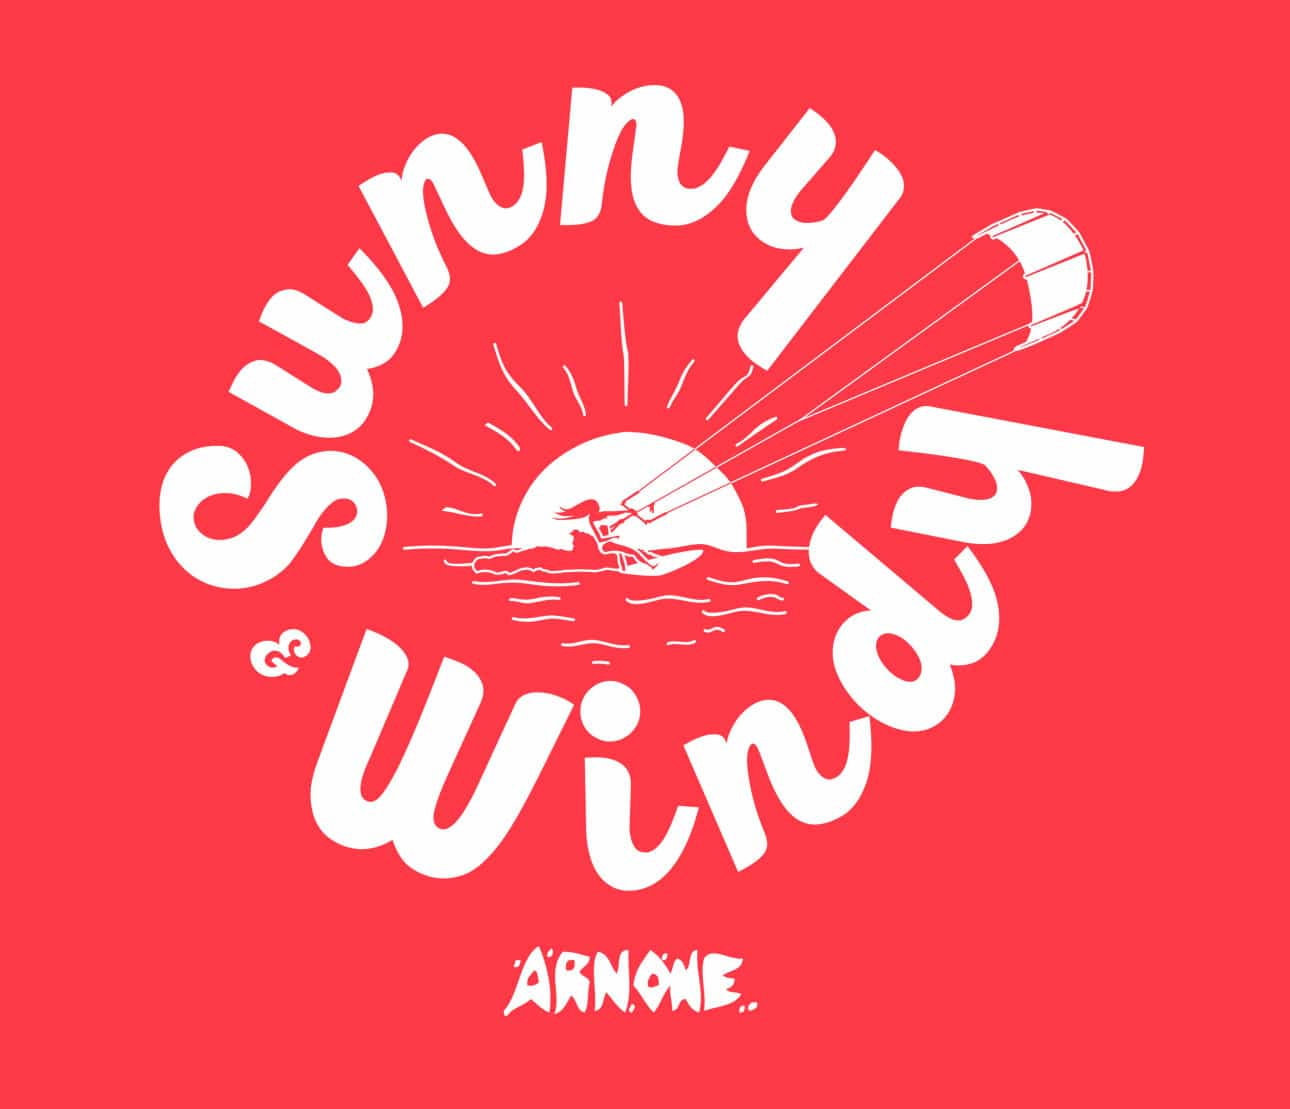 sunny windy kite